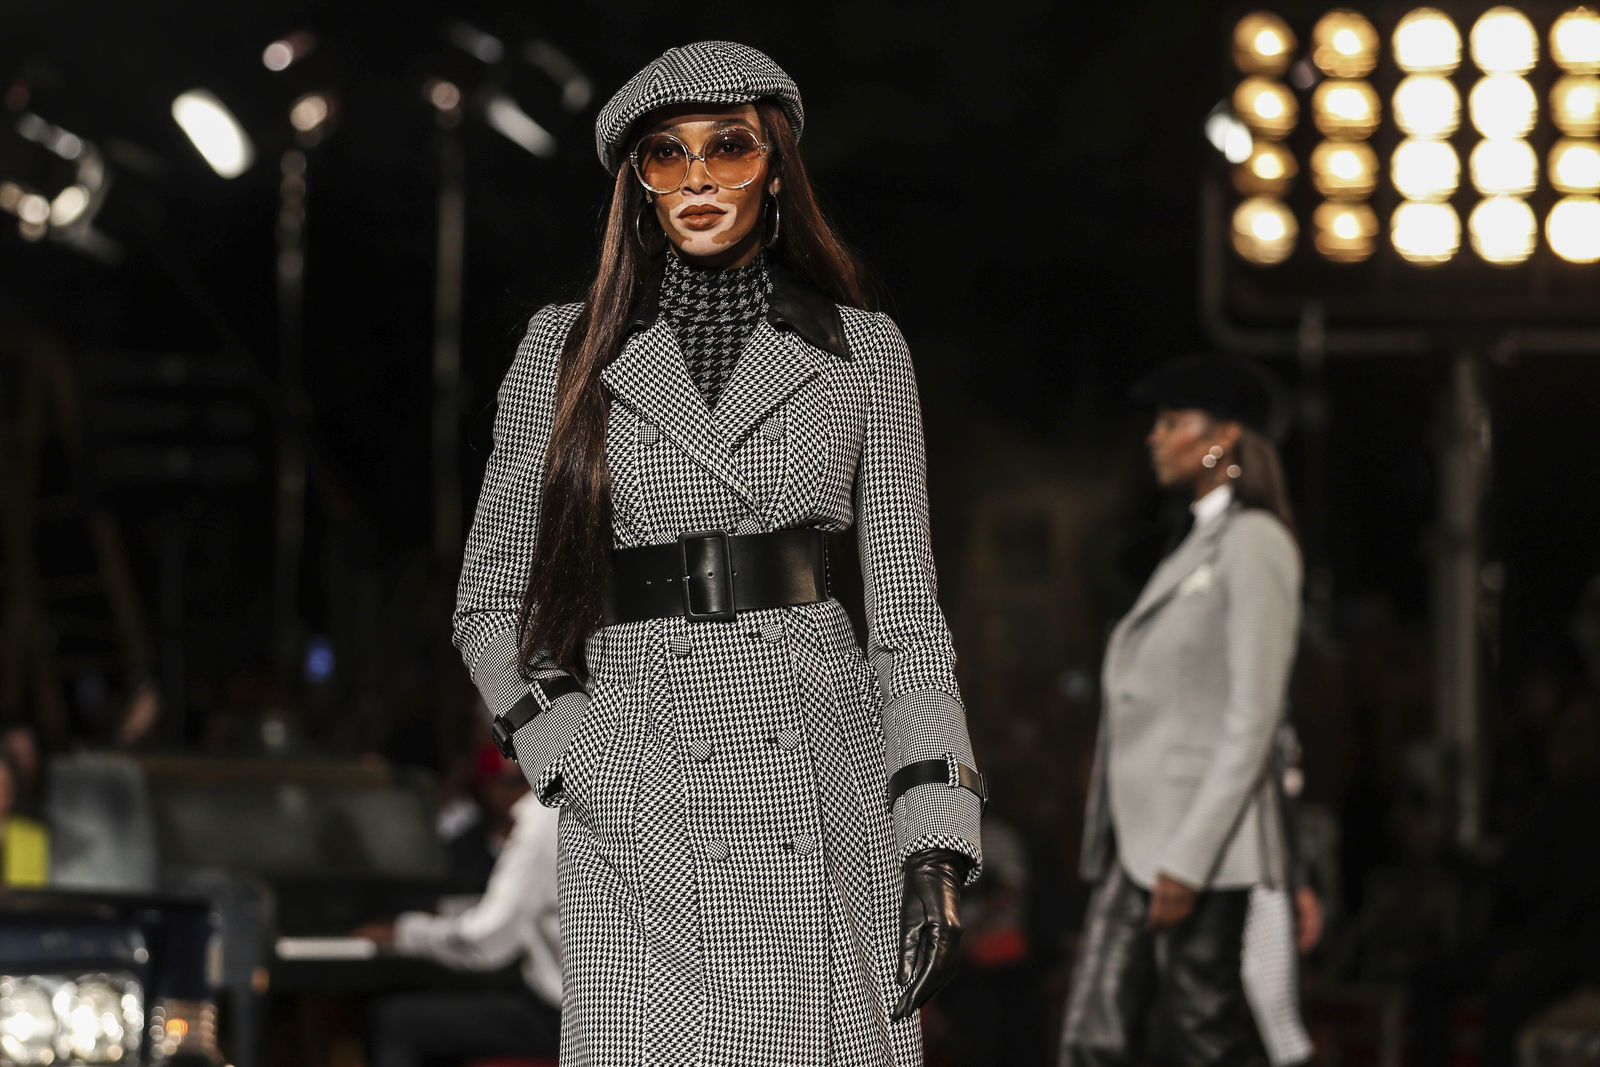 Winnie Harlow models the Tommy Hilfiger collection during Fashion Week in New York, Sunday, Sept. 8, 2019. (AP Photo/Jeenah Moon)